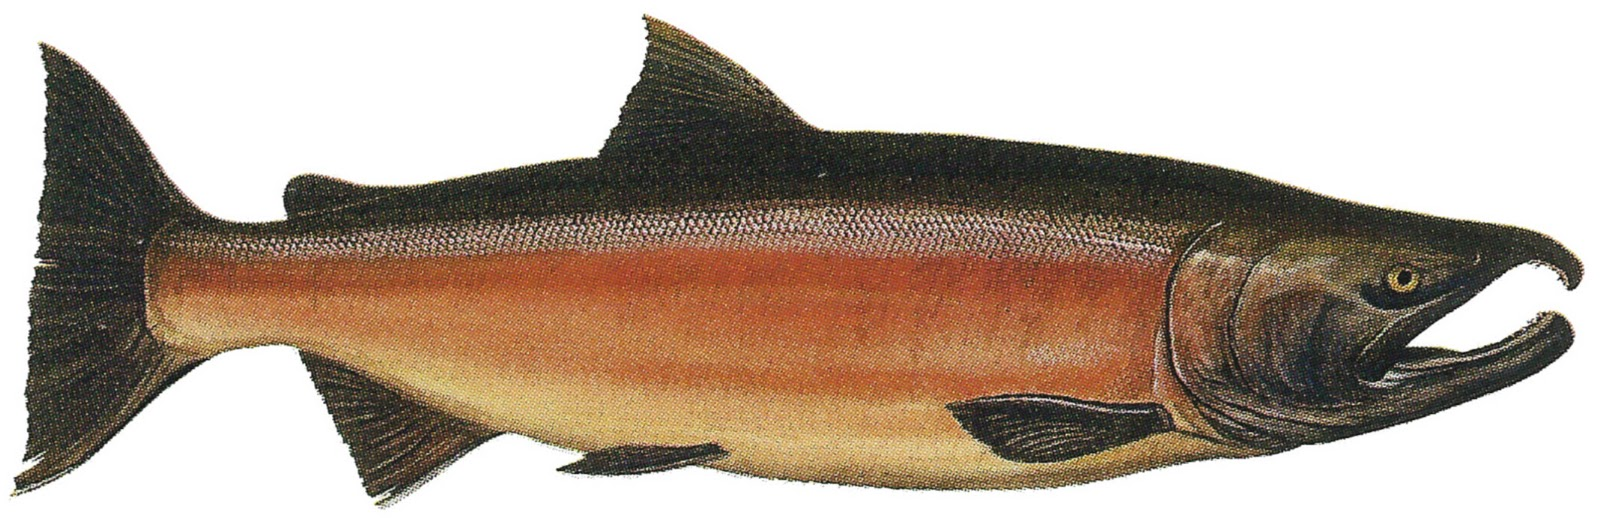 Fish coho salmon for Salmon fish pictures